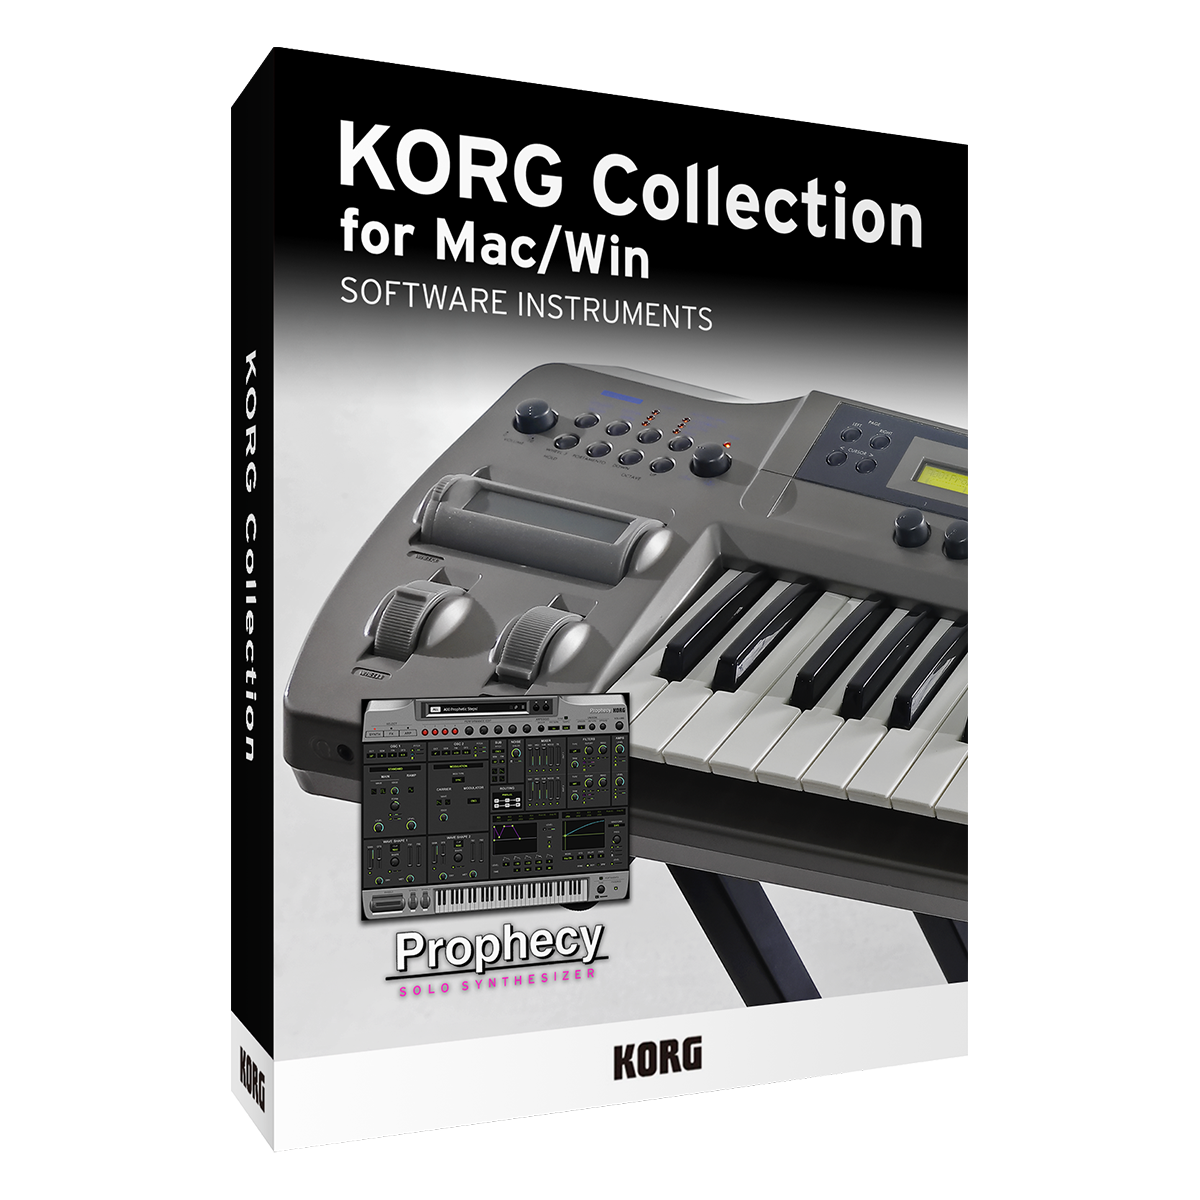 KORG Collection 3 - Prophecy